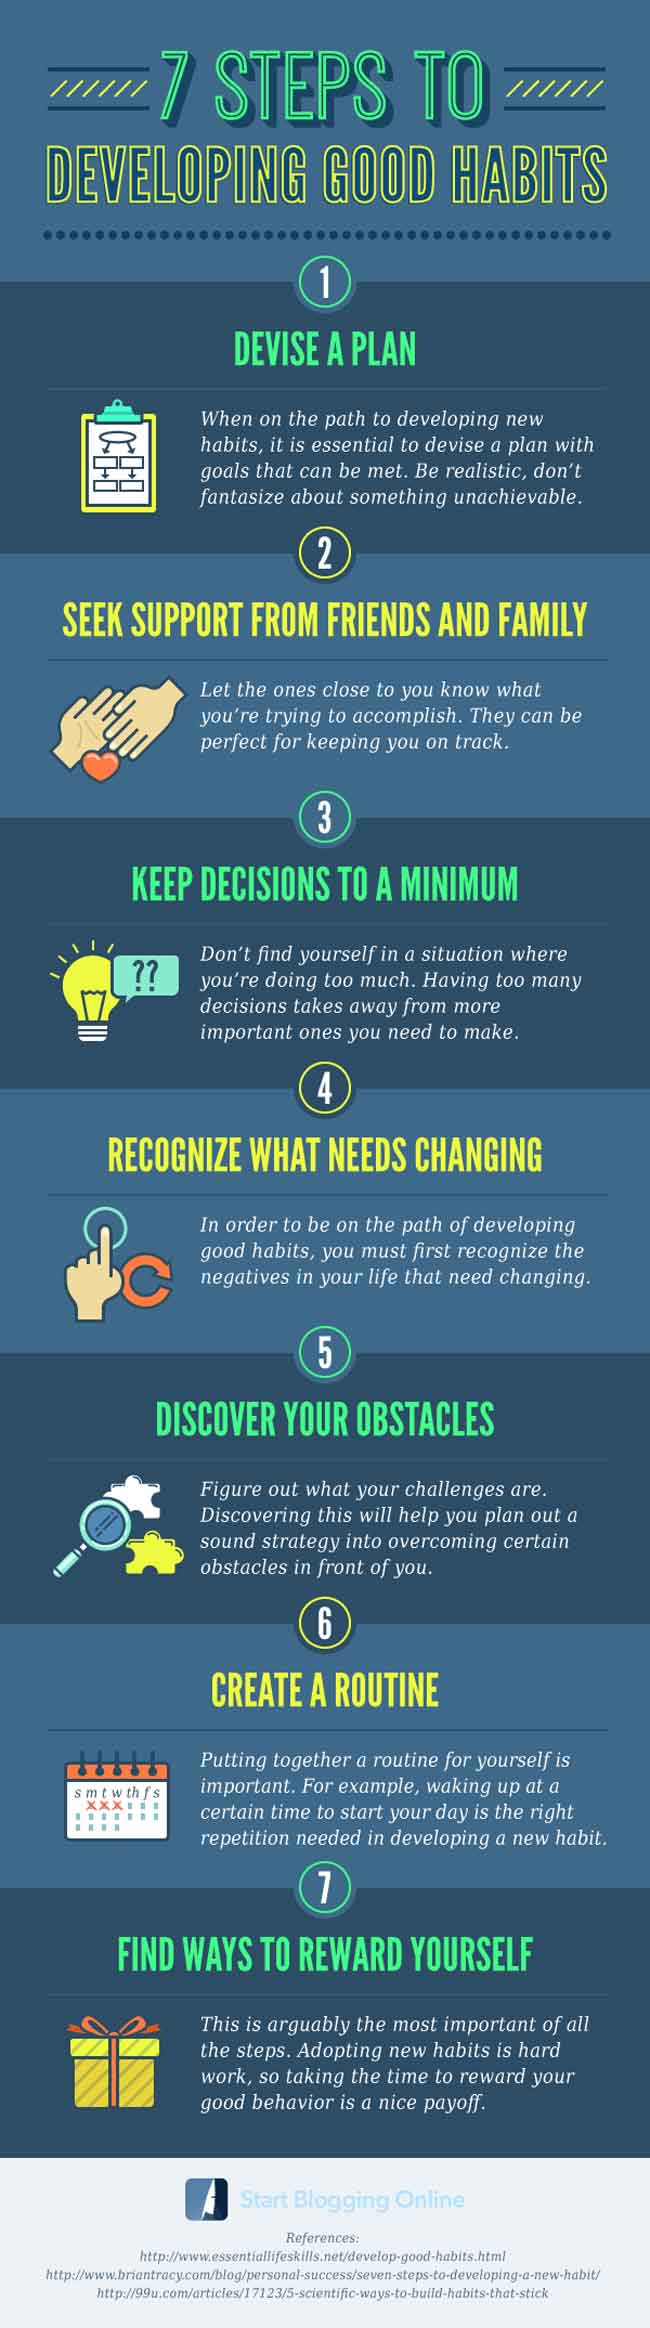 7-steps-to-developing-good-habits-3